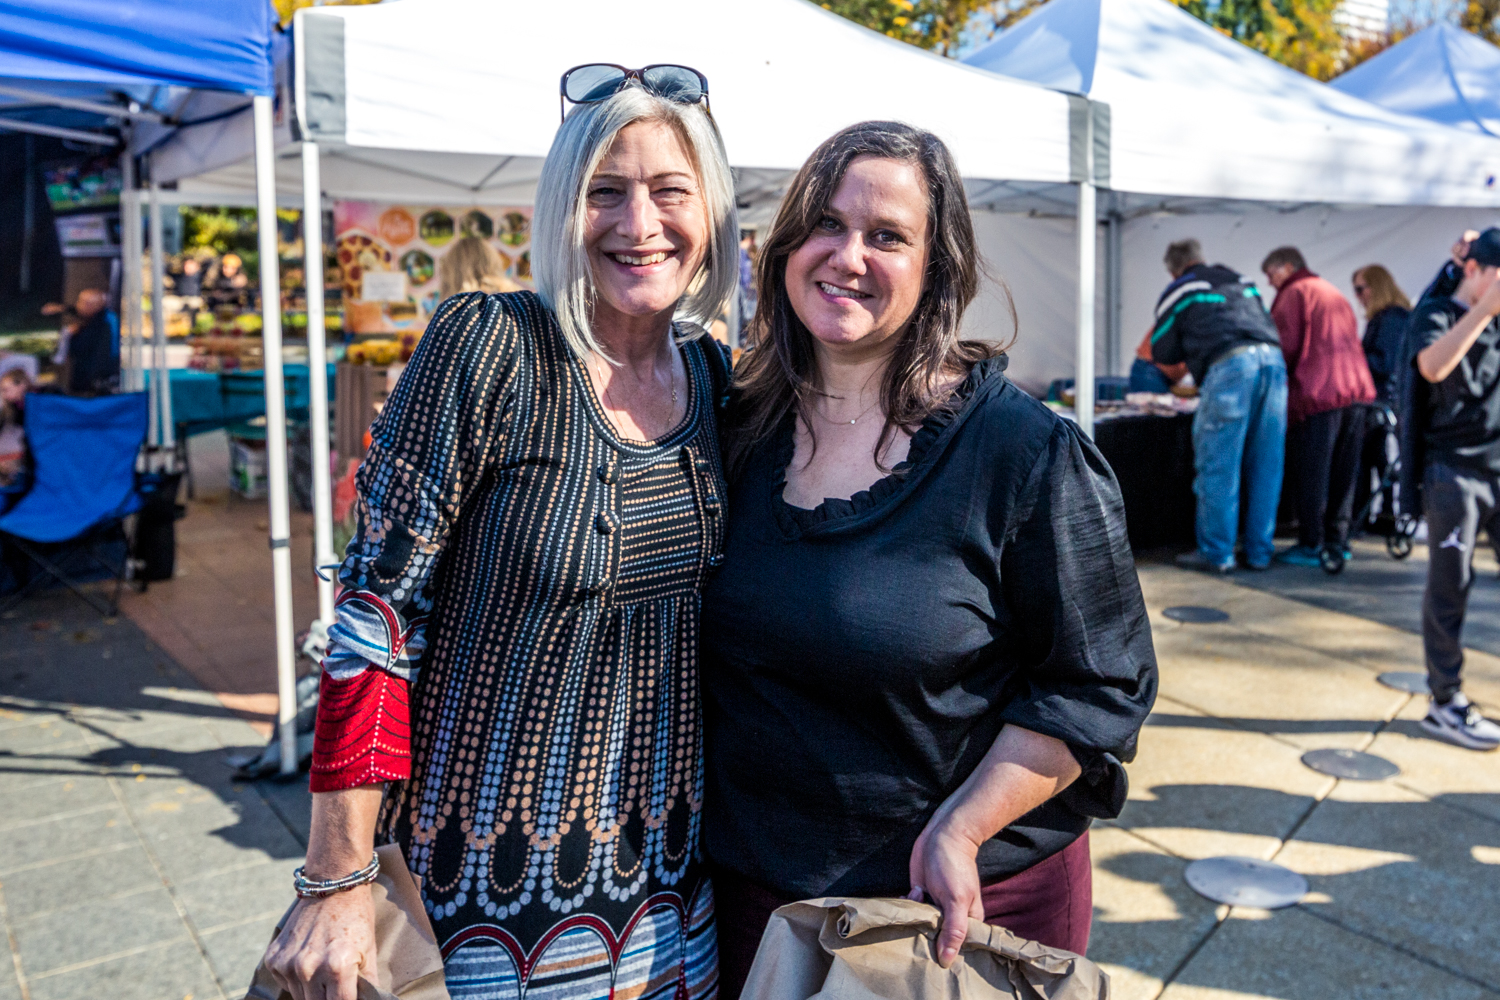 Allison Holliday and Debi Ash / Image: Catherine Viox{ }// Published: 10.28.19